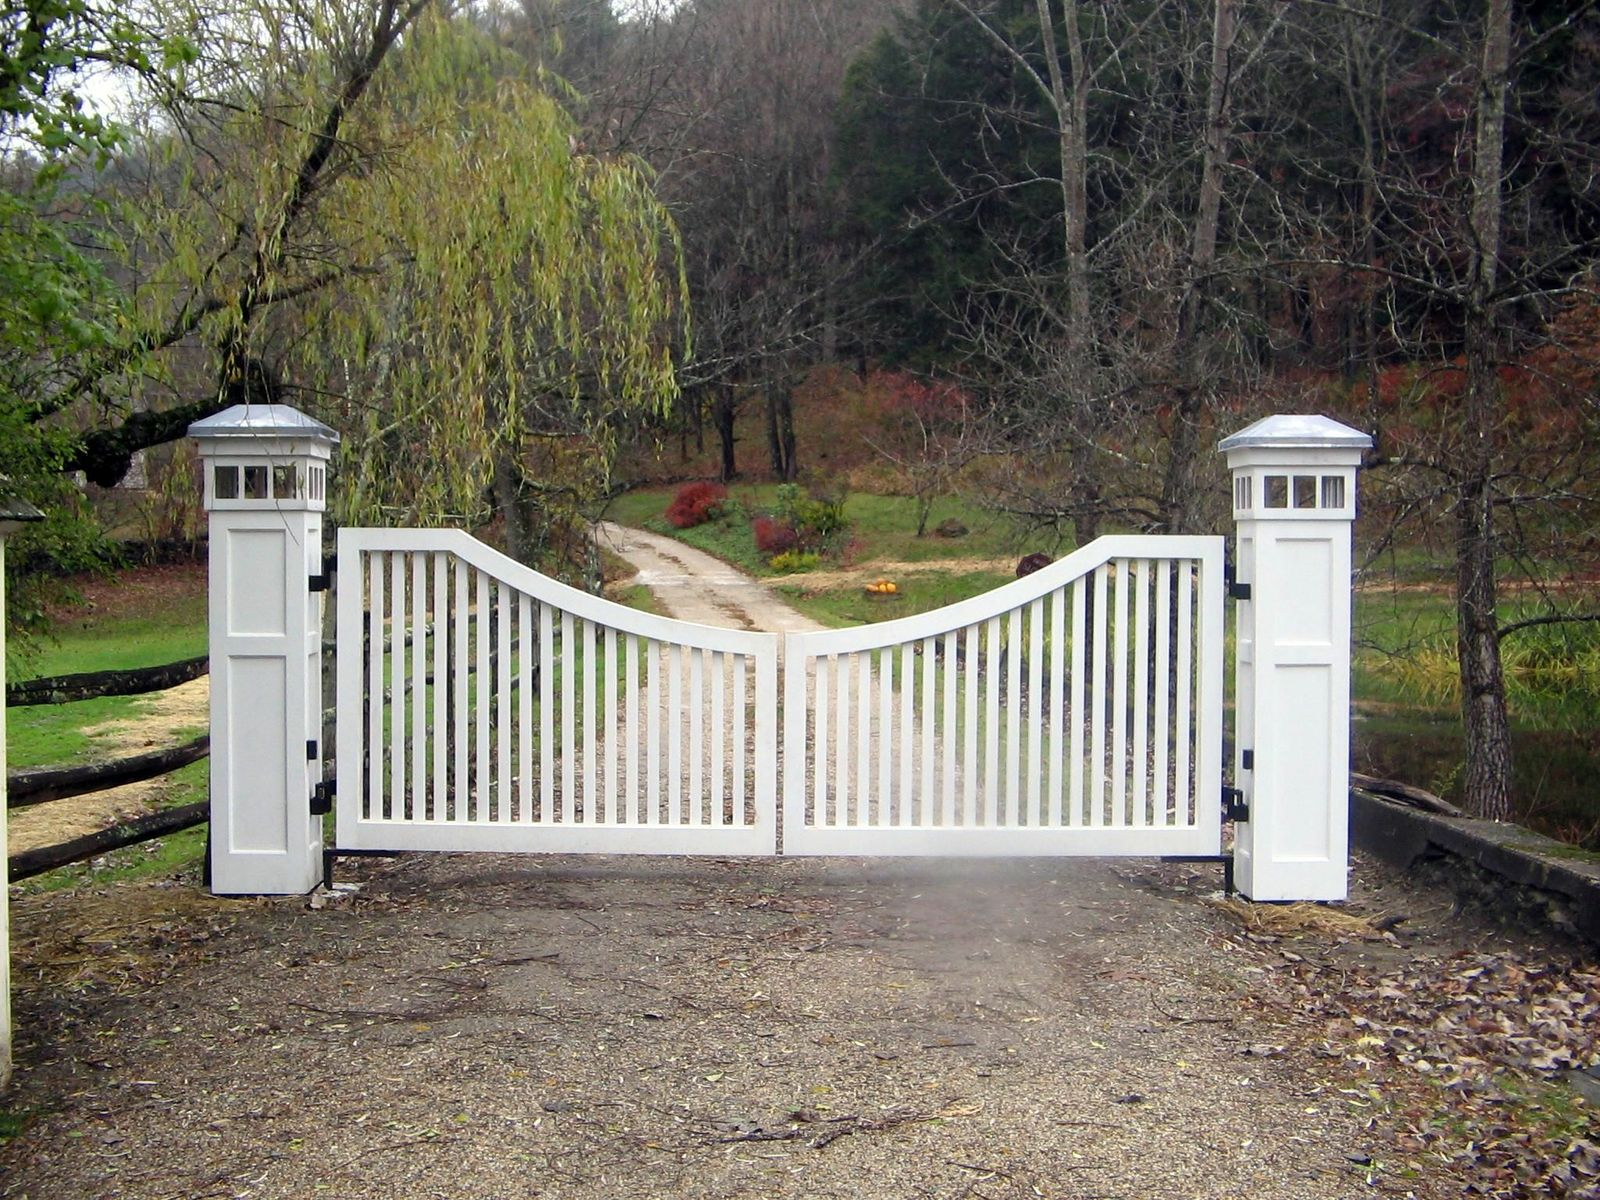 Wooden driveway gate with lighting on posts